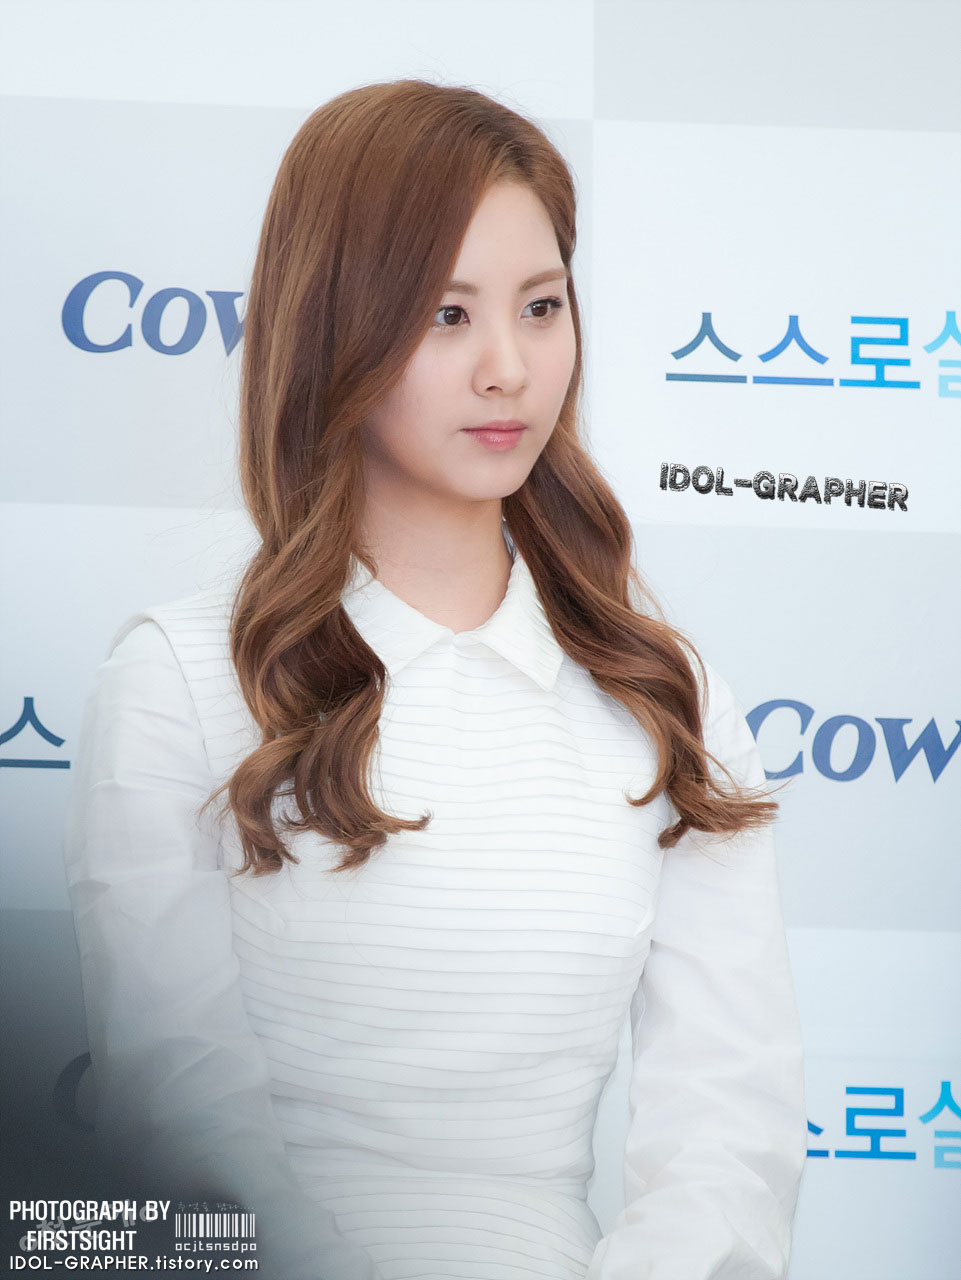 SNSD Seohyun Woongjin Coway event